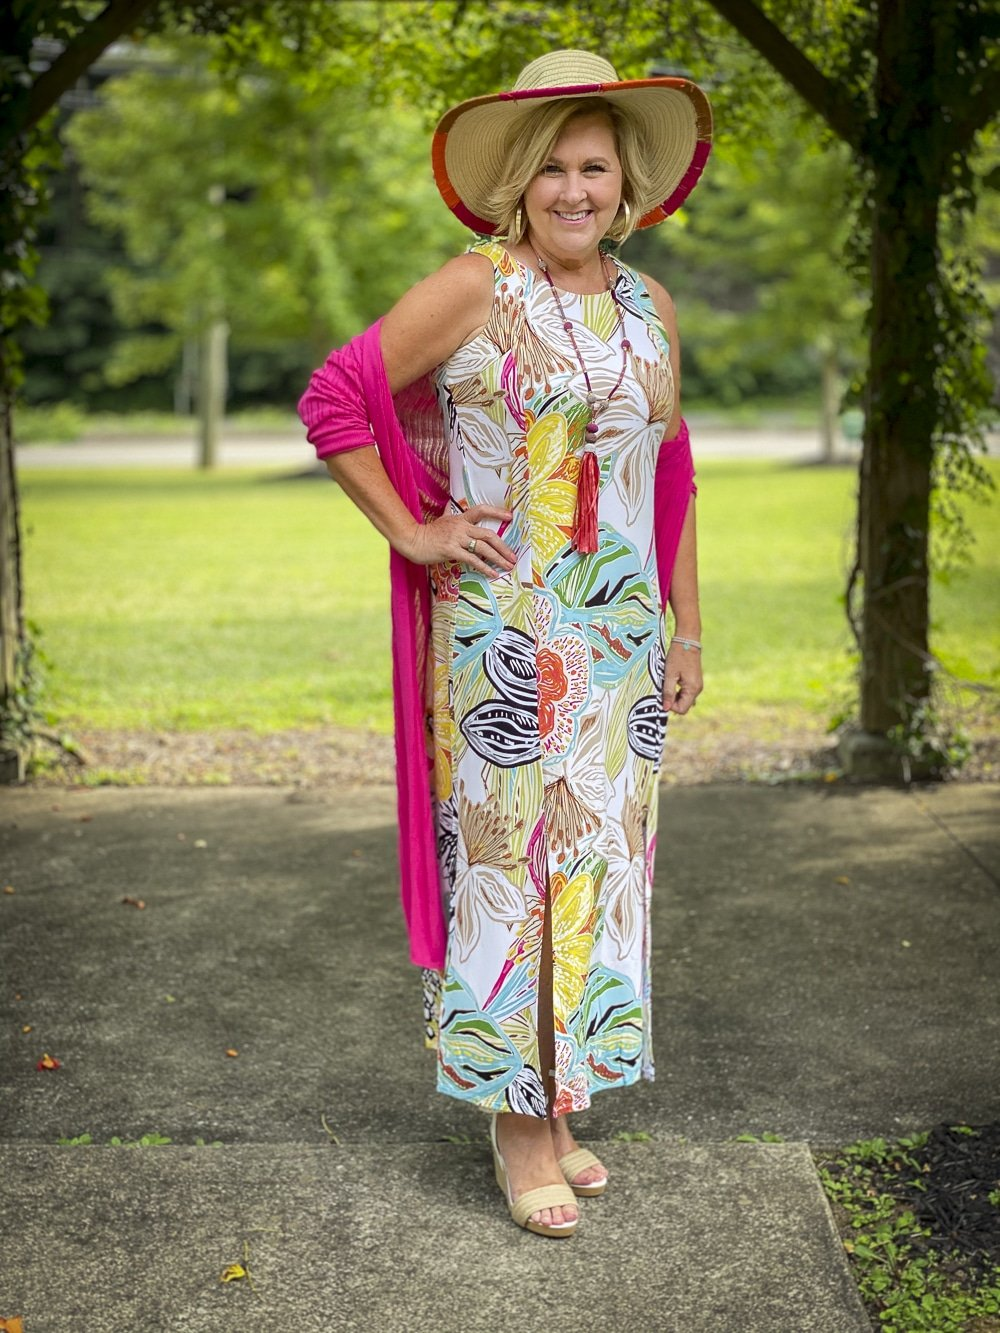 Fashion Blogger 50 Is Not Old is wearing a tropical print sleeveless dress, a pink cardigan, colorful accessories and white espadrilles